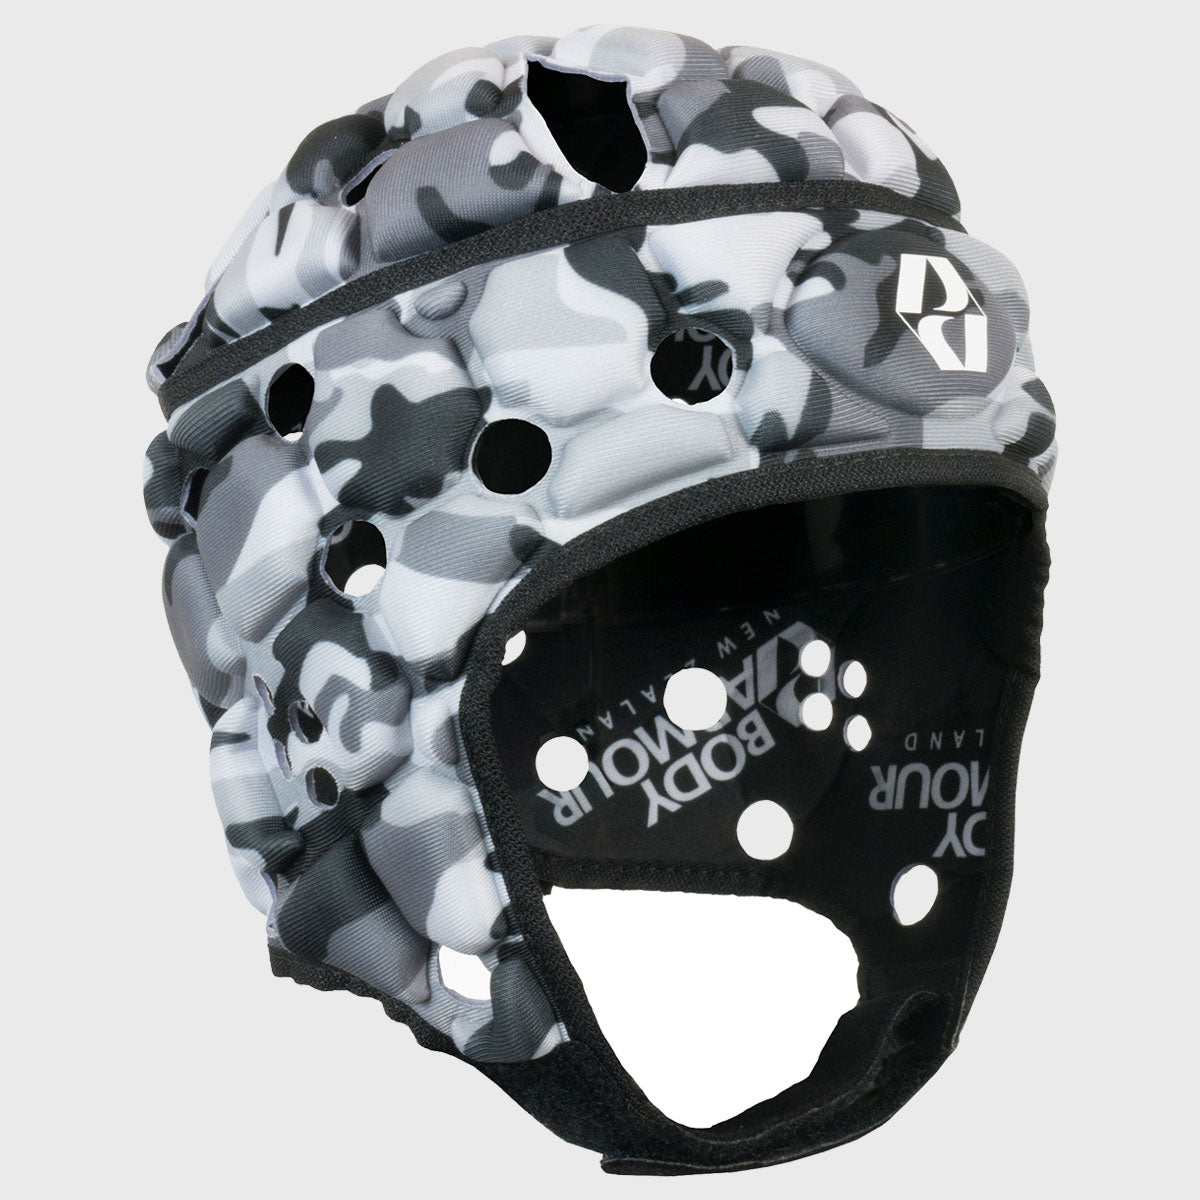 Kid's Ventilator Rugby Headguard Camo Black